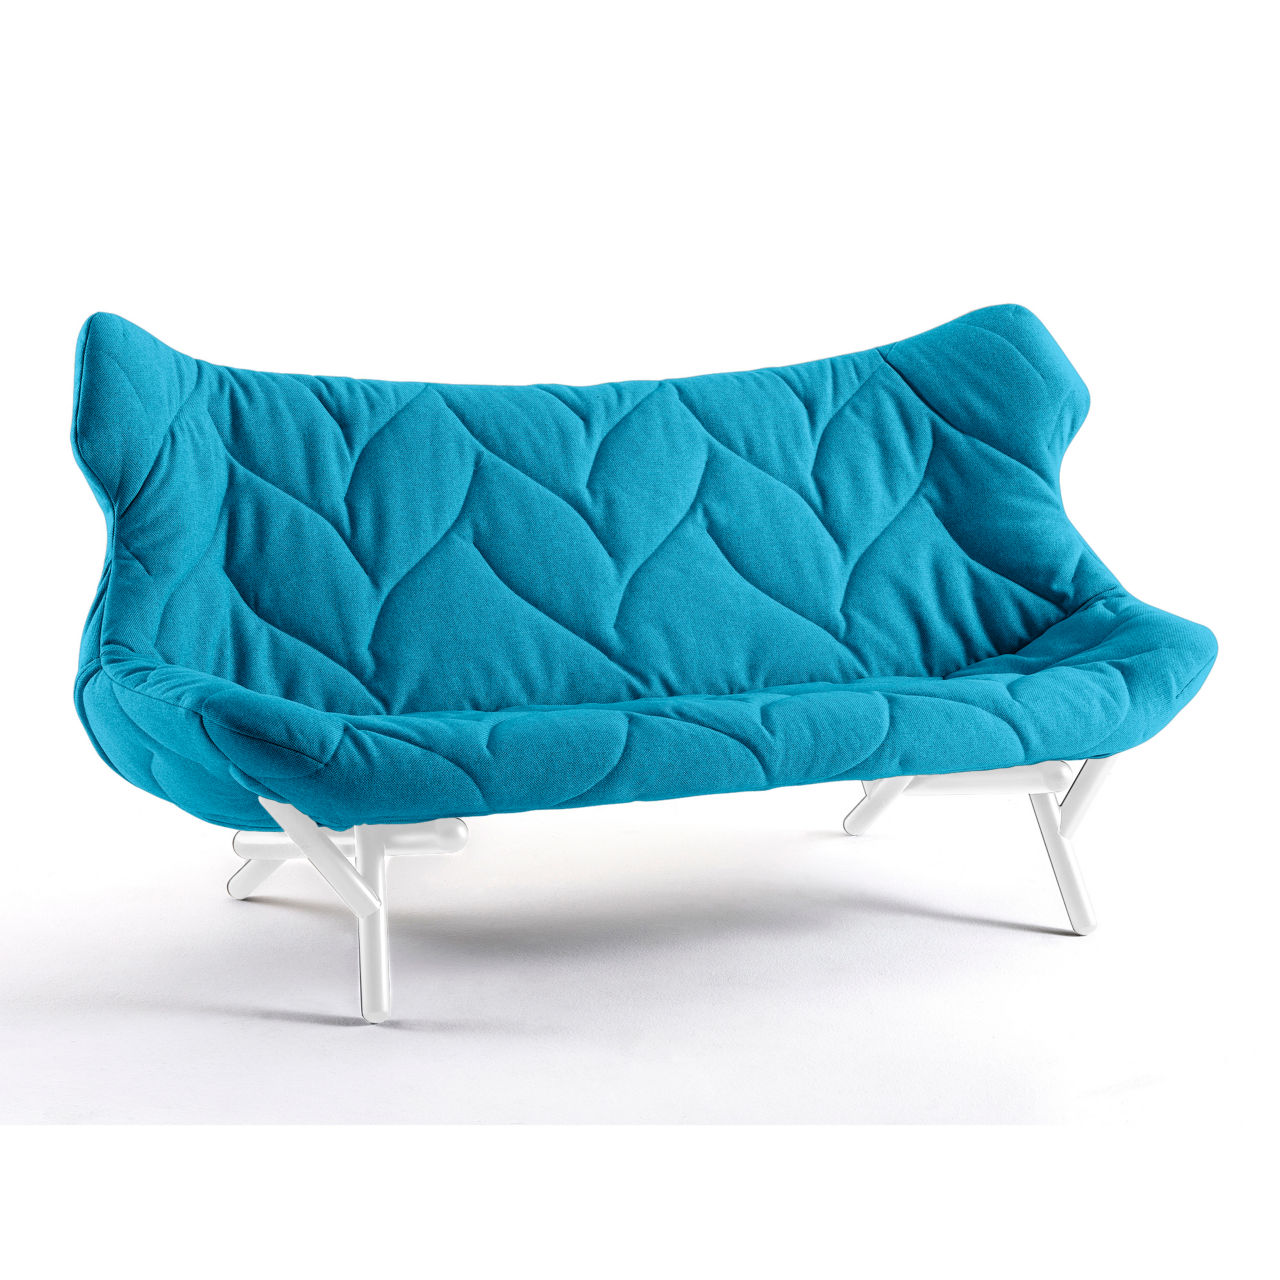 Foliage Sofa in Blue by Kartell